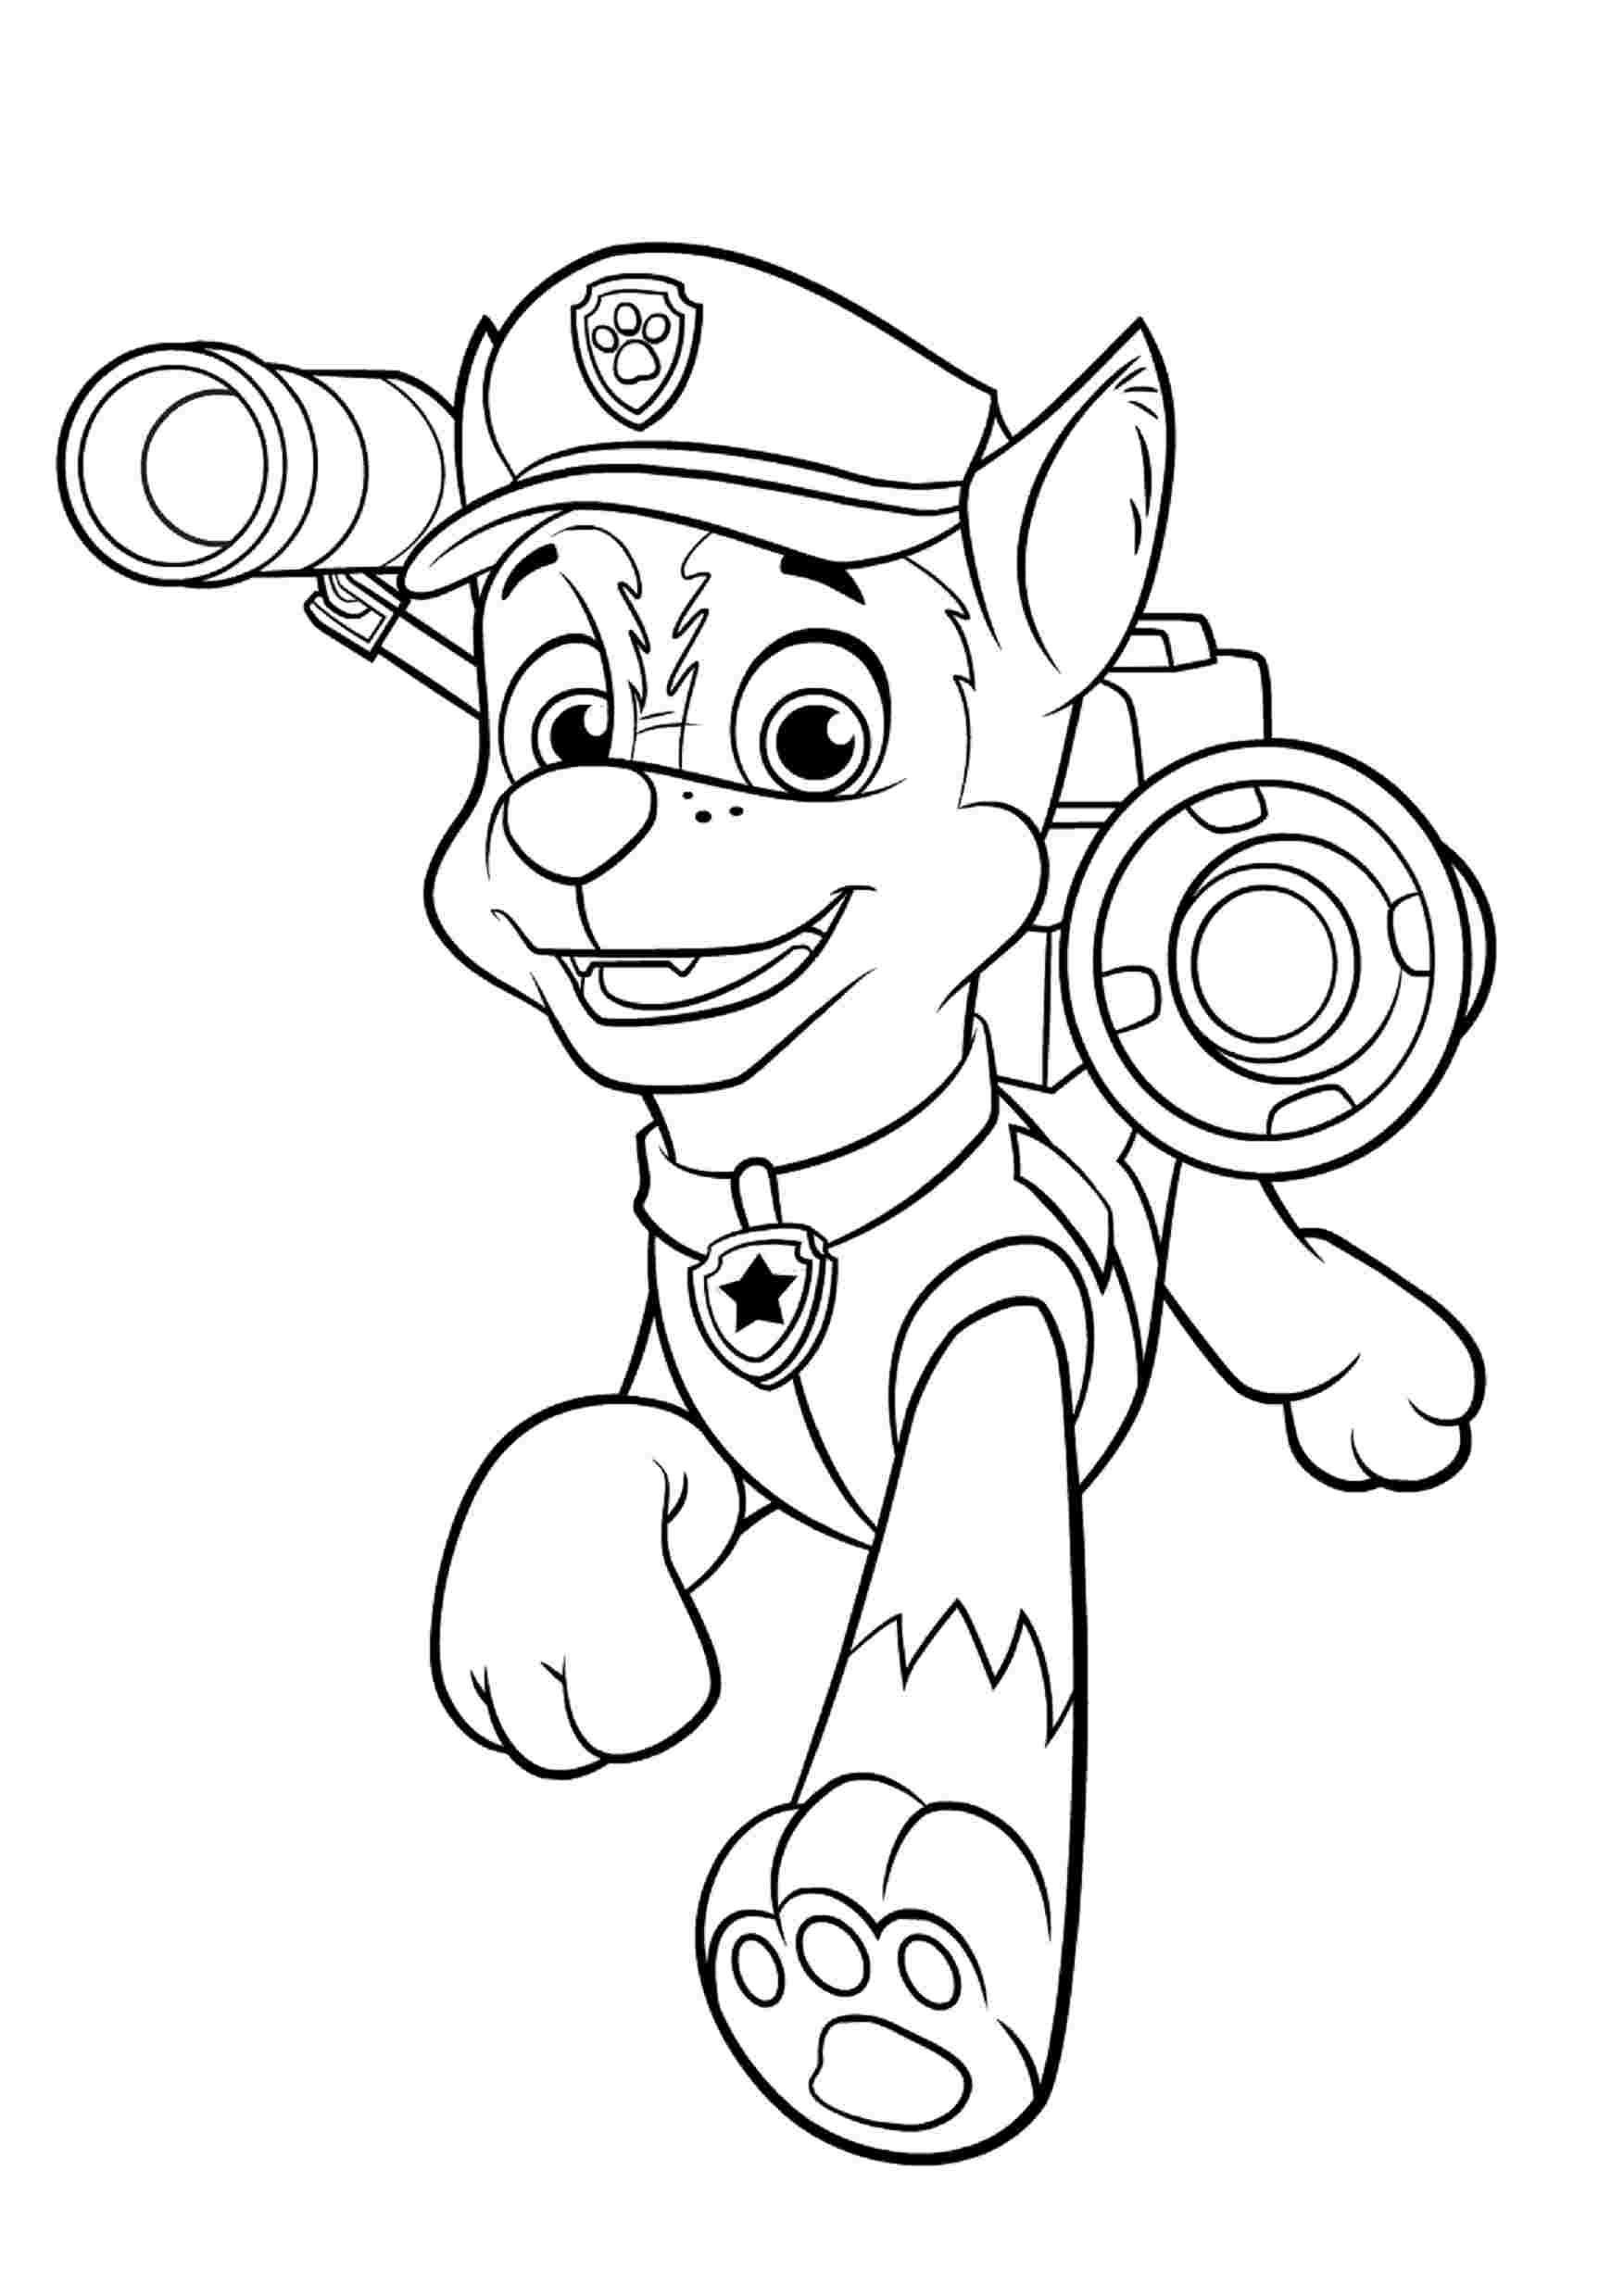 Coloring Pages : Paw Patrol Ryder And Coloring Tracker Printable ...